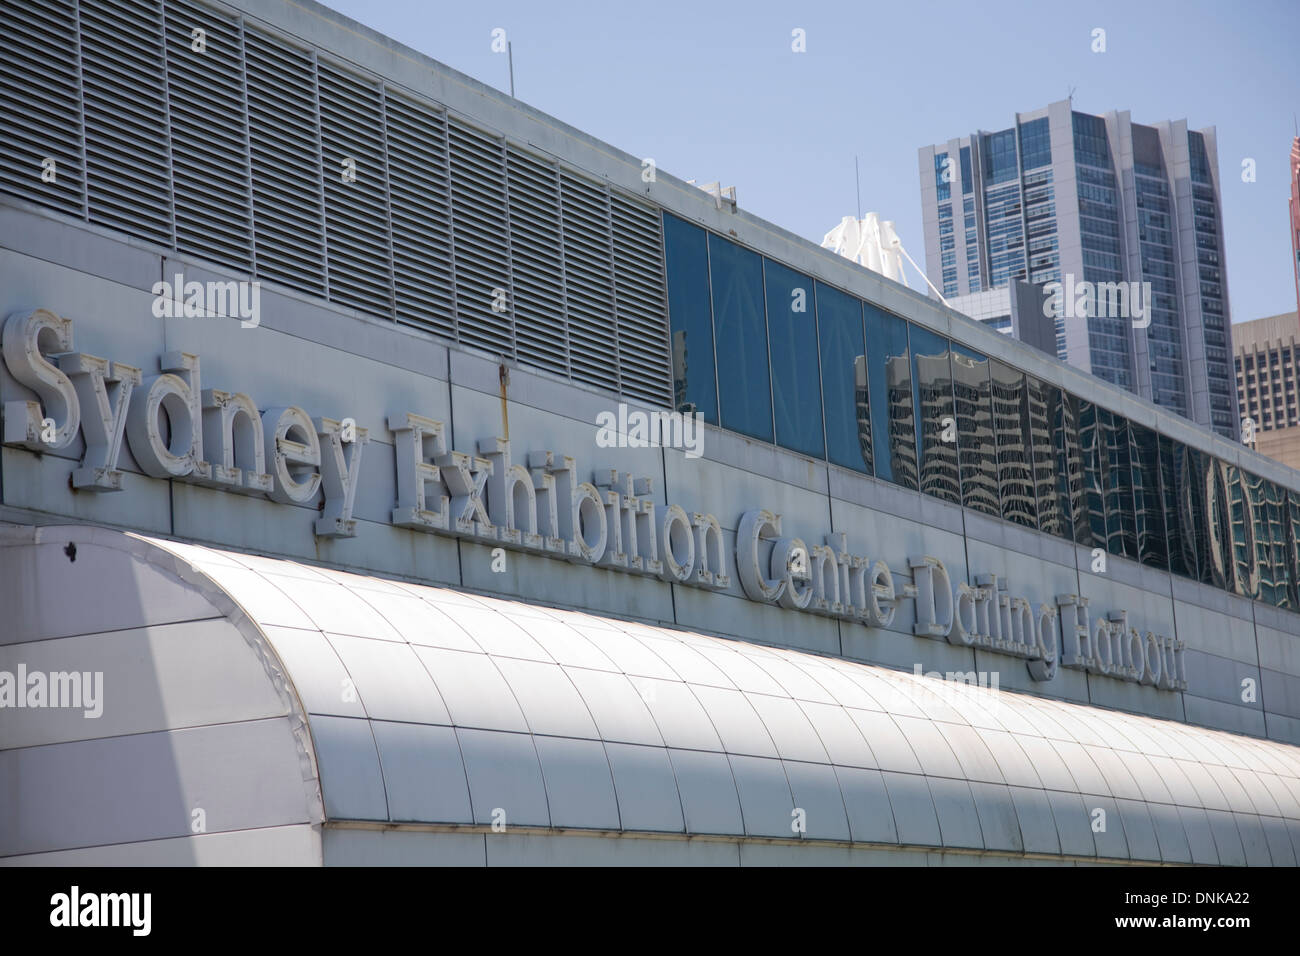 sydney's exhibition and conference centre in the city, at darling harbour. Due to be demolished in 2014 - Stock Image